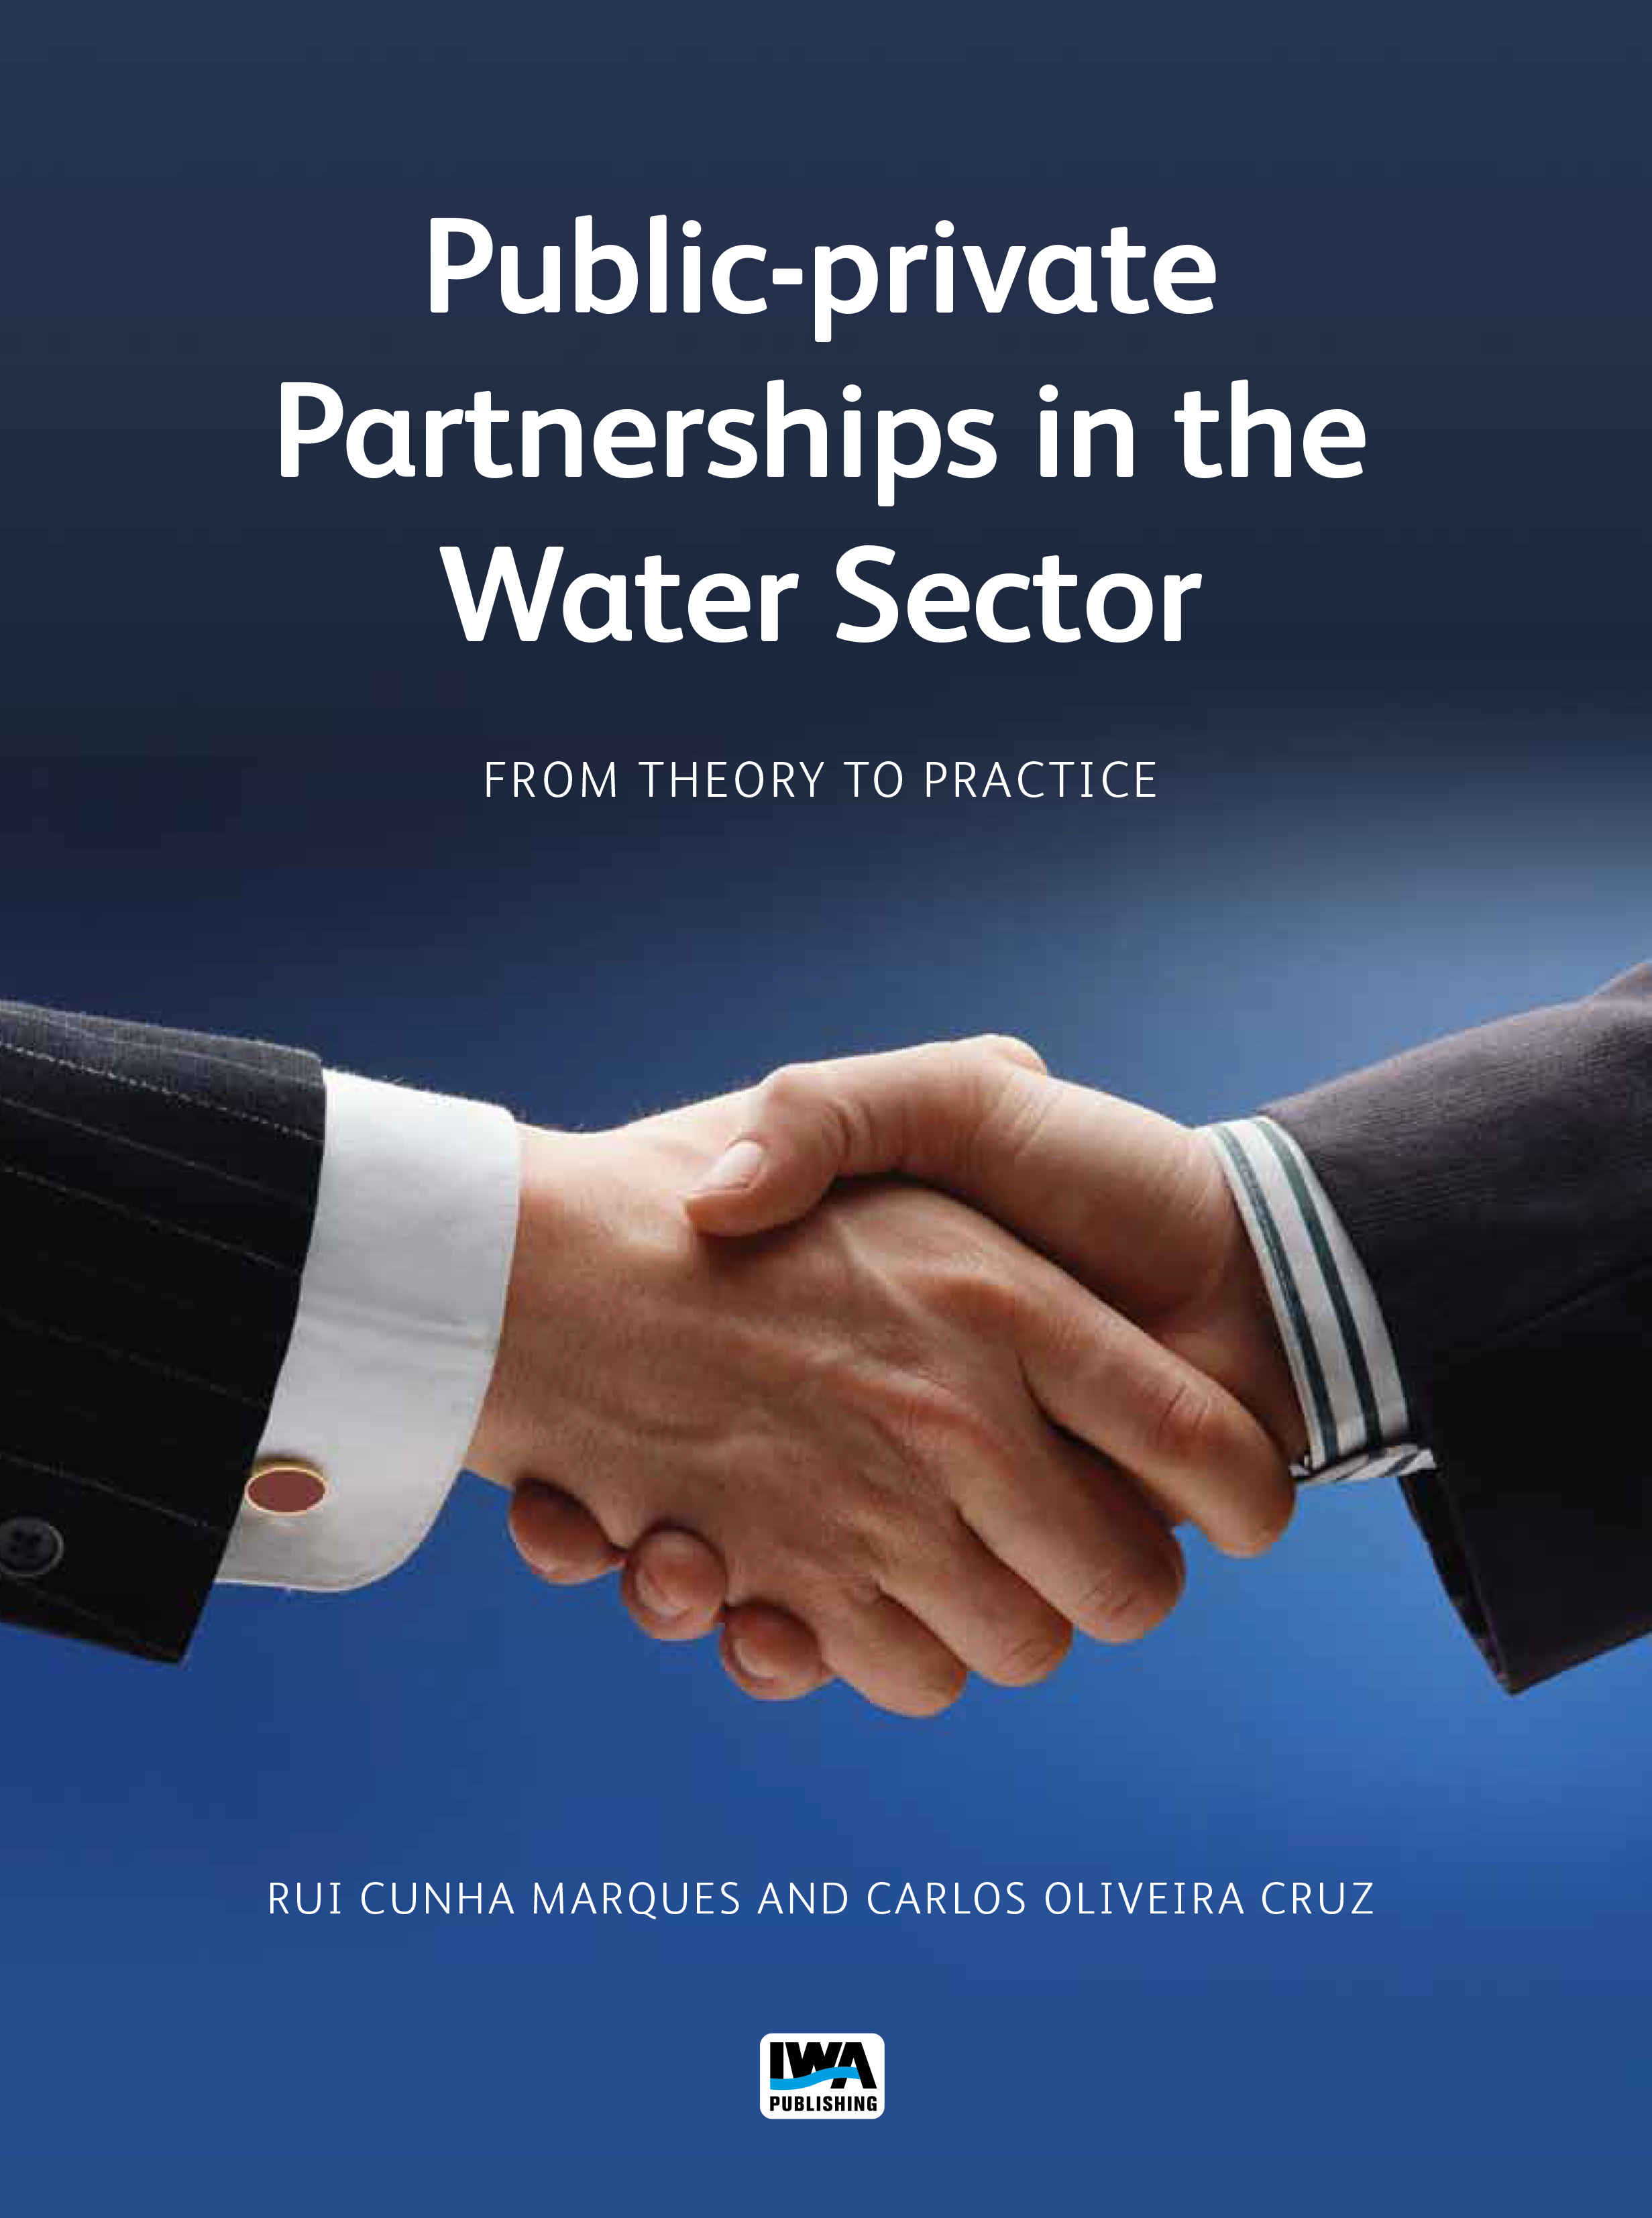 Public-private Partnerships in the Water Sector: From Theory to Practice